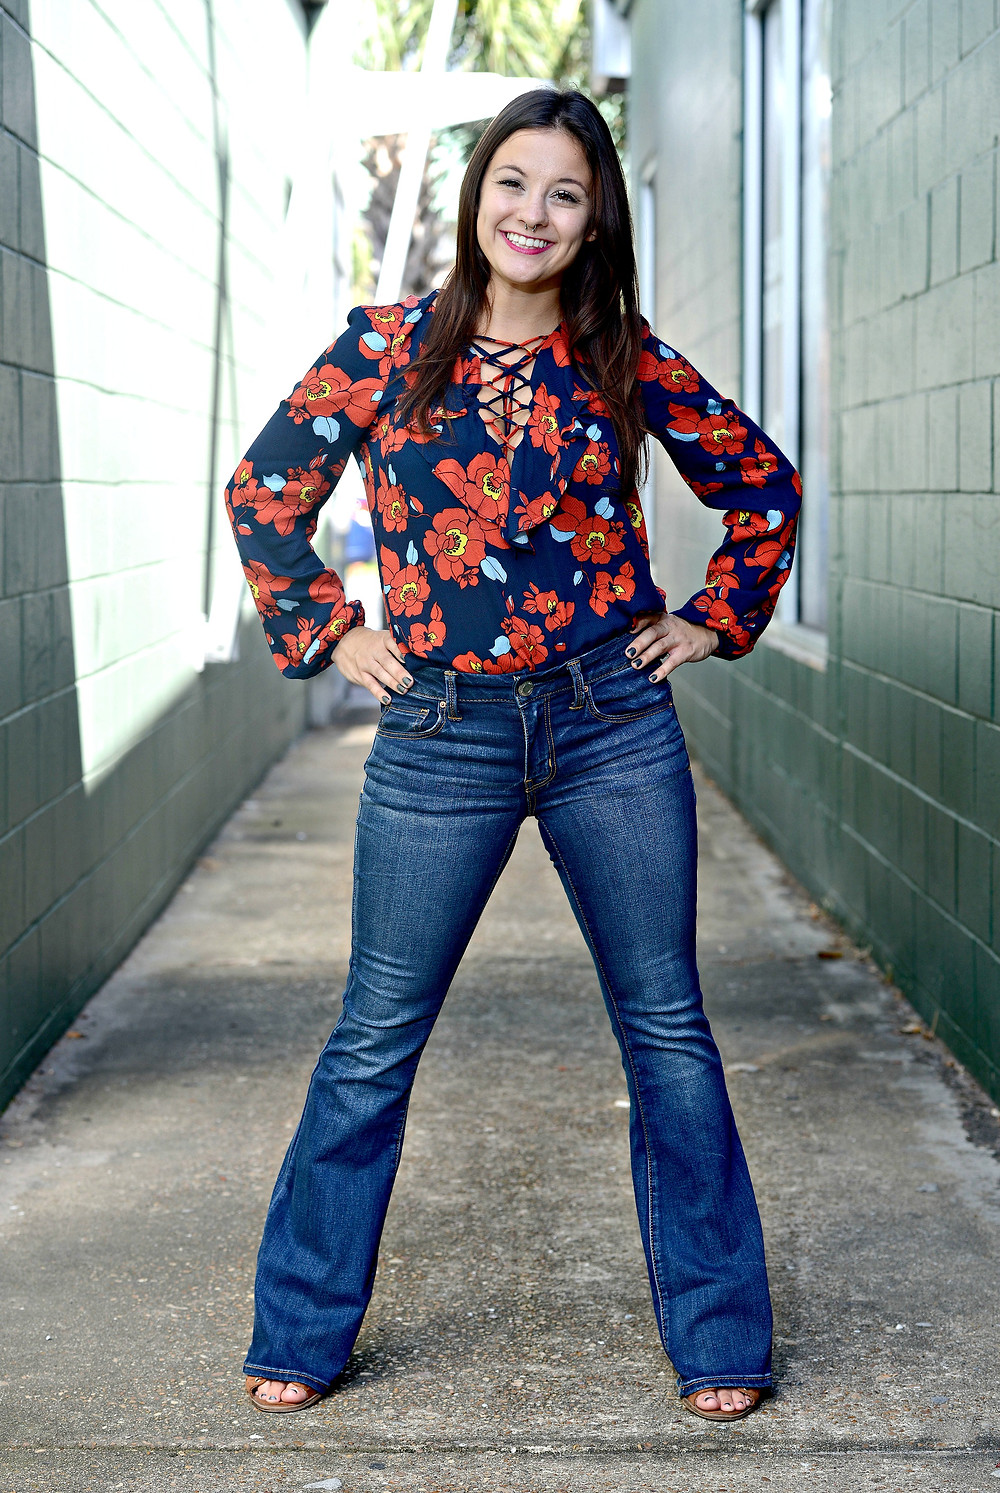 A style blogger wears a floral lace-up blouse and flared jeans.